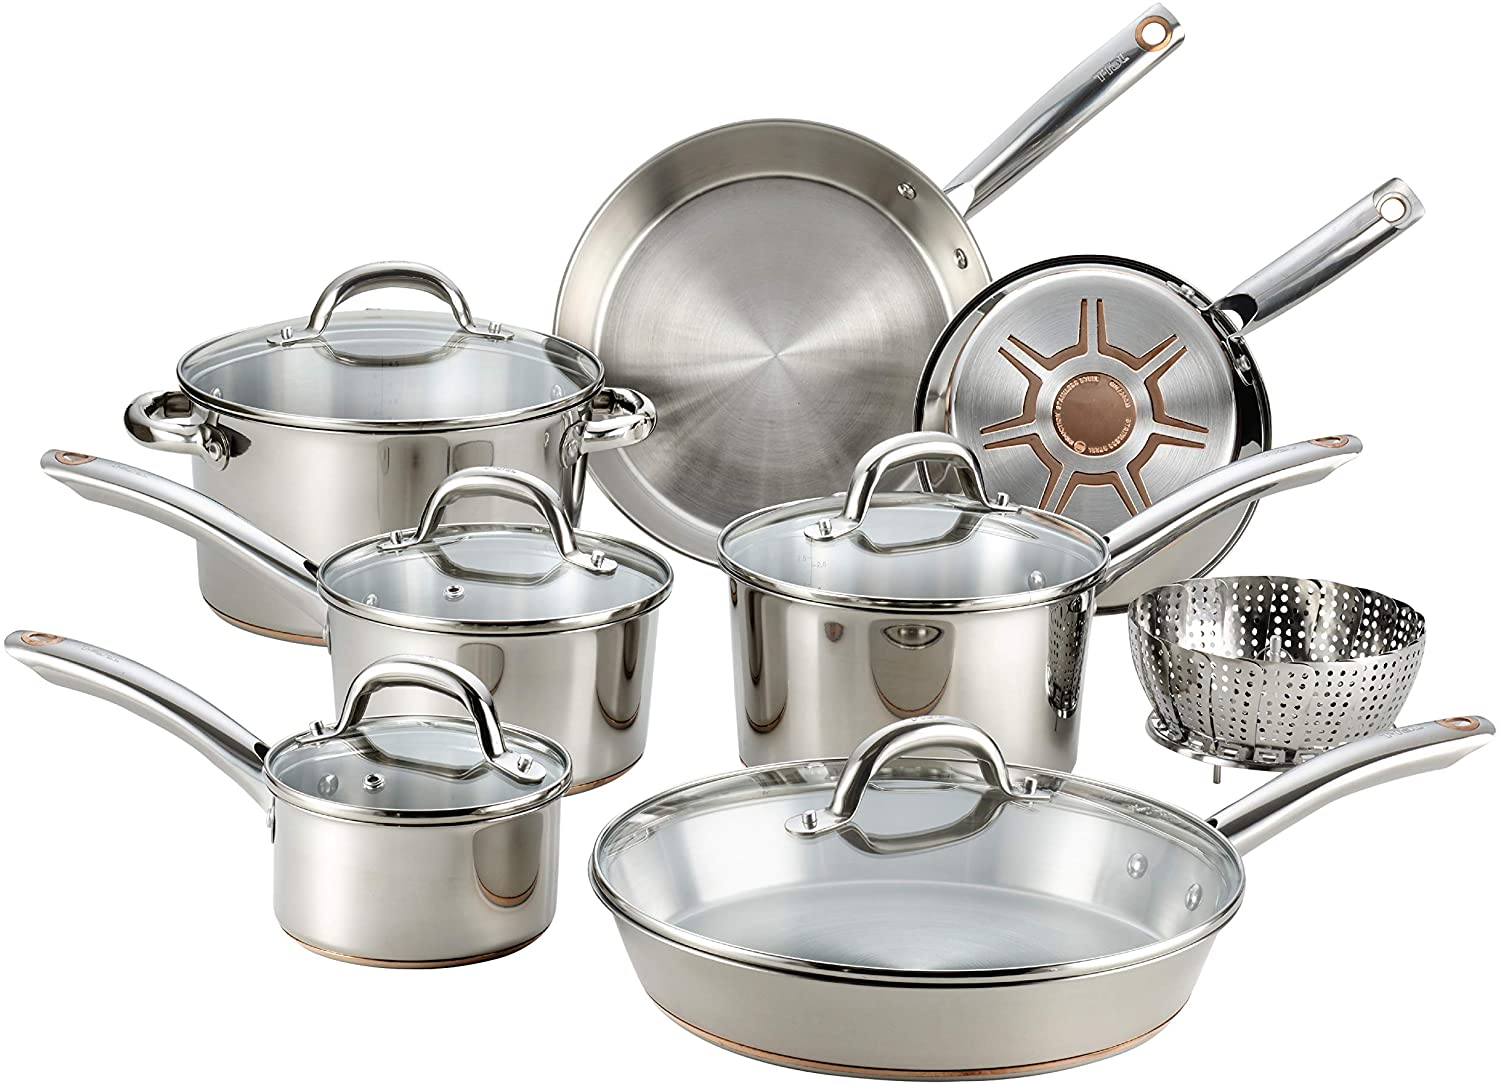 T-fal Ultimate affordable cookware set